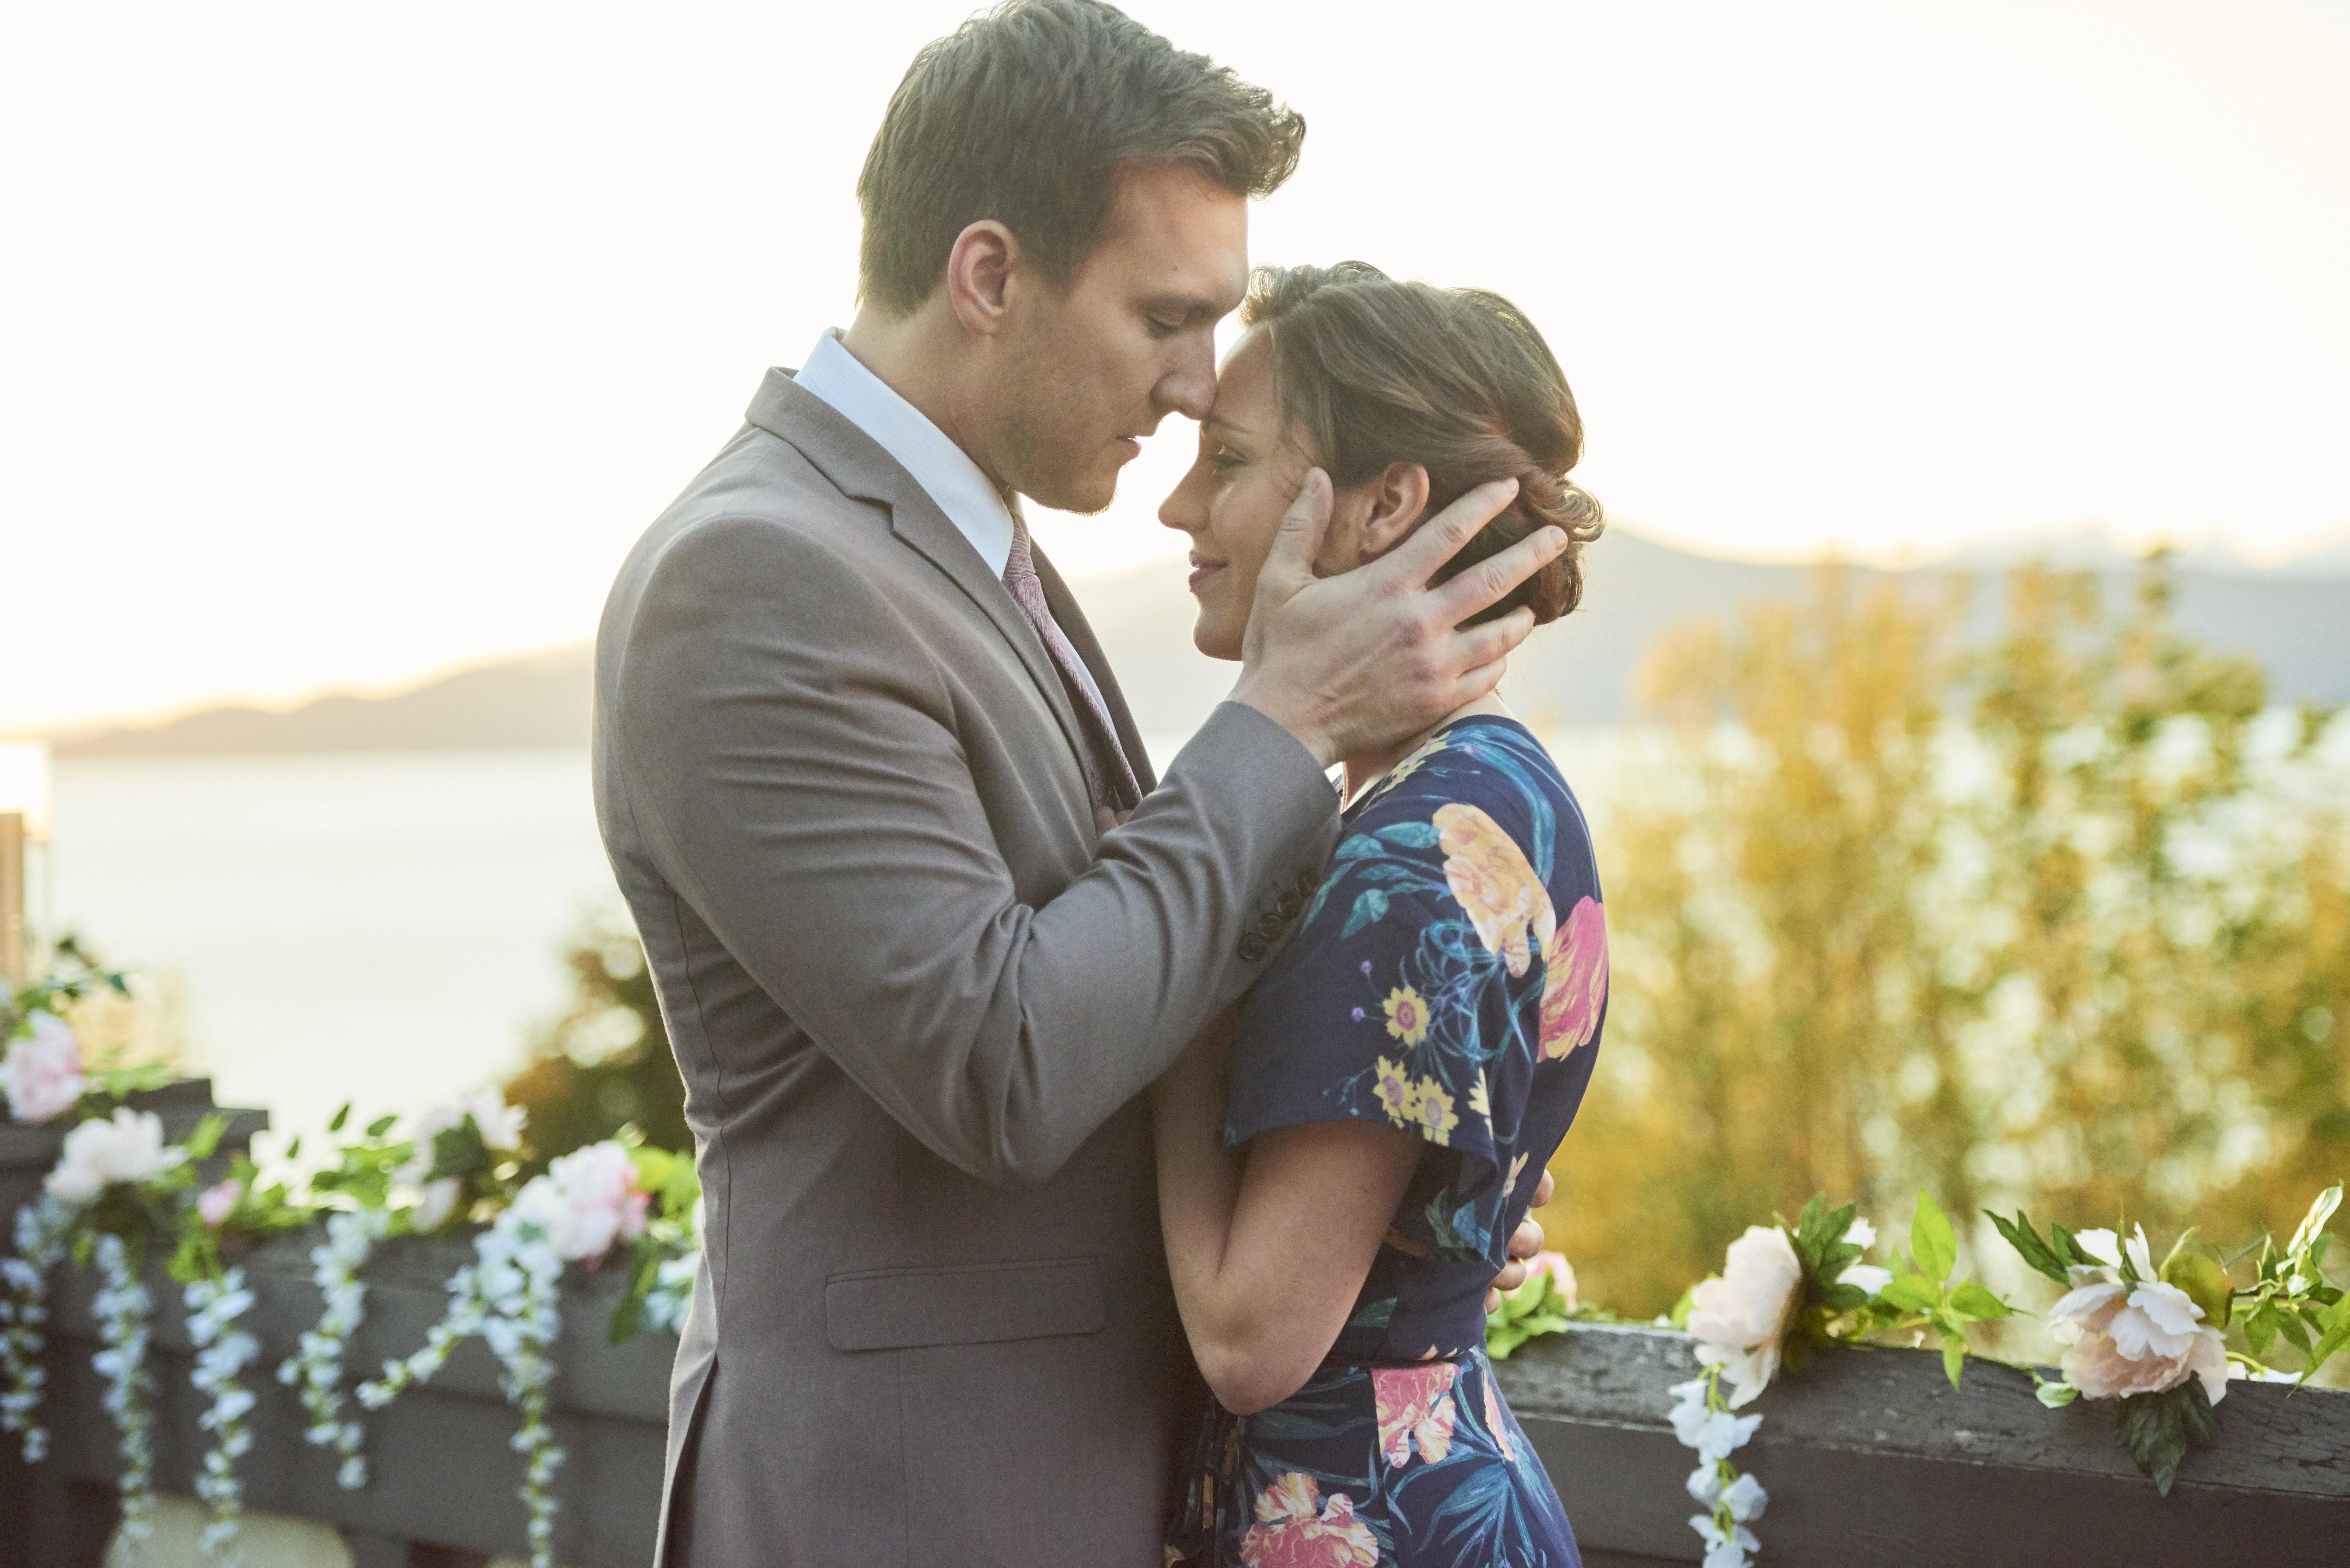 Gay Couples Are Earning First Billing In Hallmark And Lifetime Holiday Images, But Audiences Interest Lags Behind